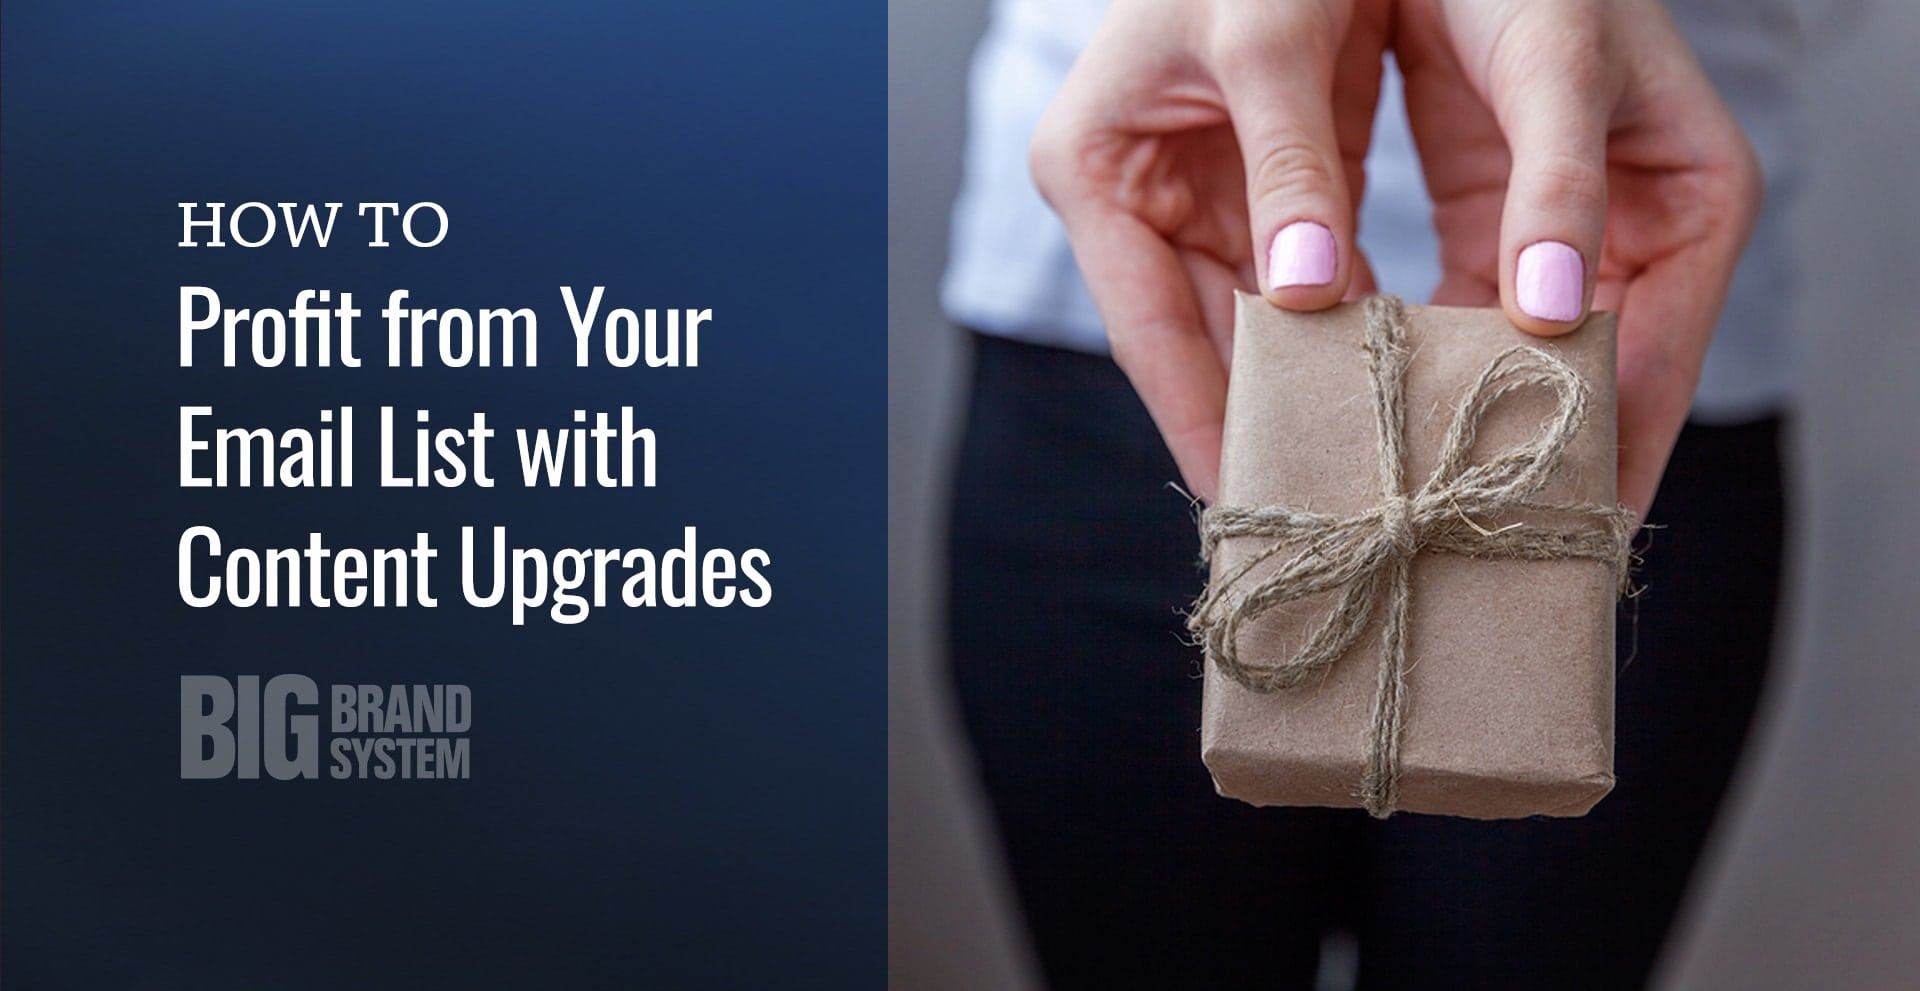 How to create content upgrades that grow your email list